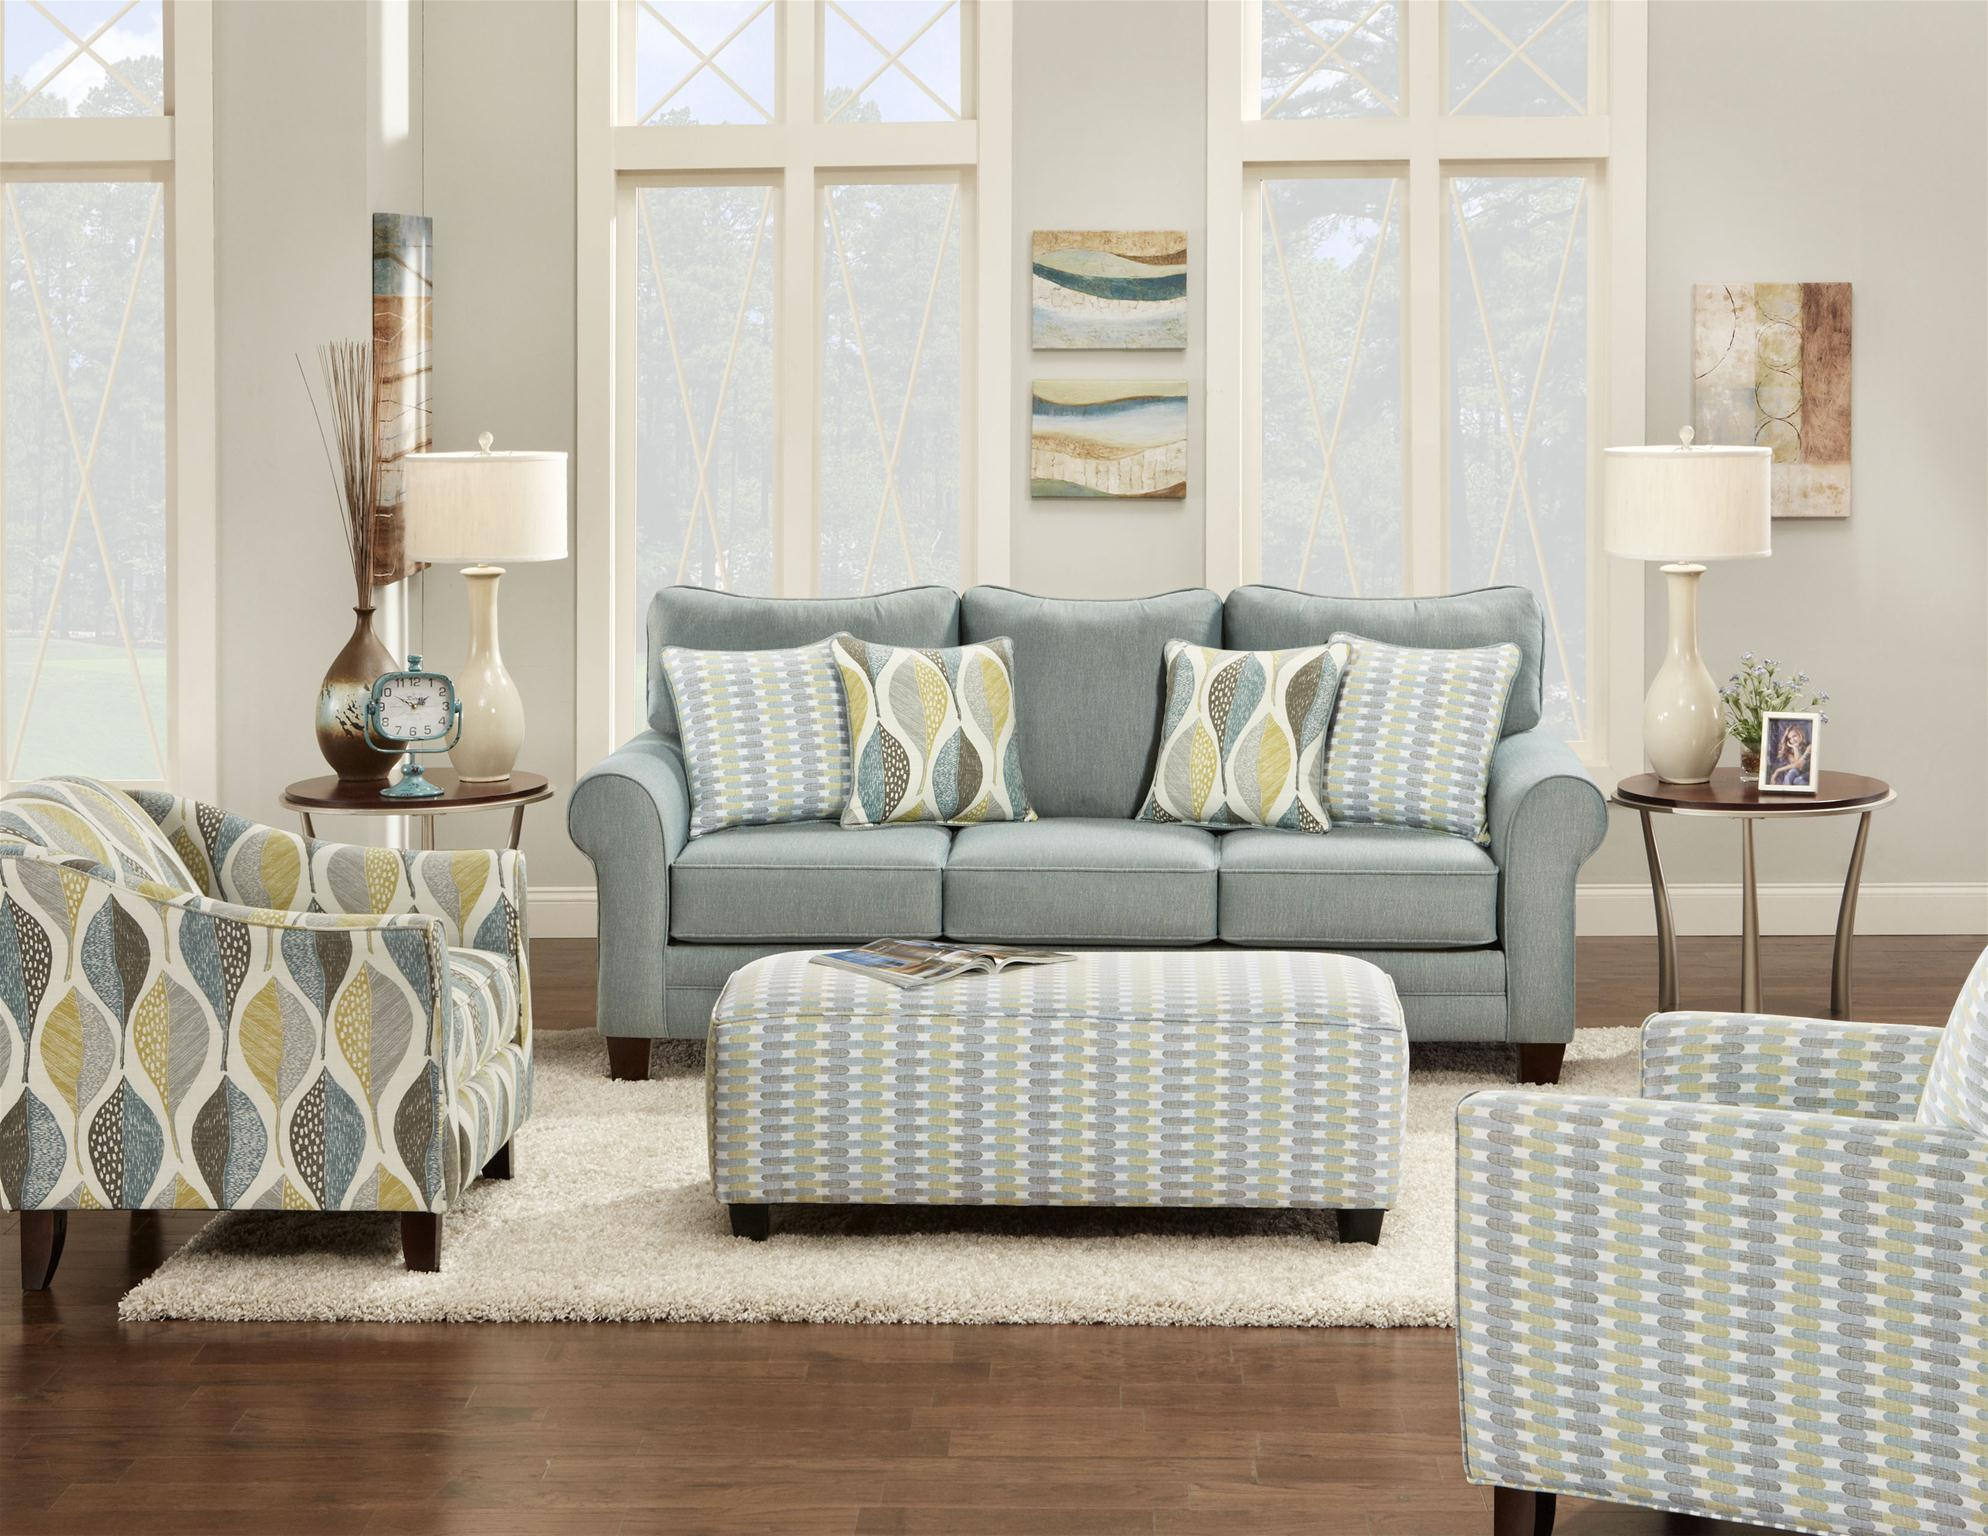 Fusion Furniture 1140 Stationary Living Room Group - Item Number: 1140 Living Room Group 1